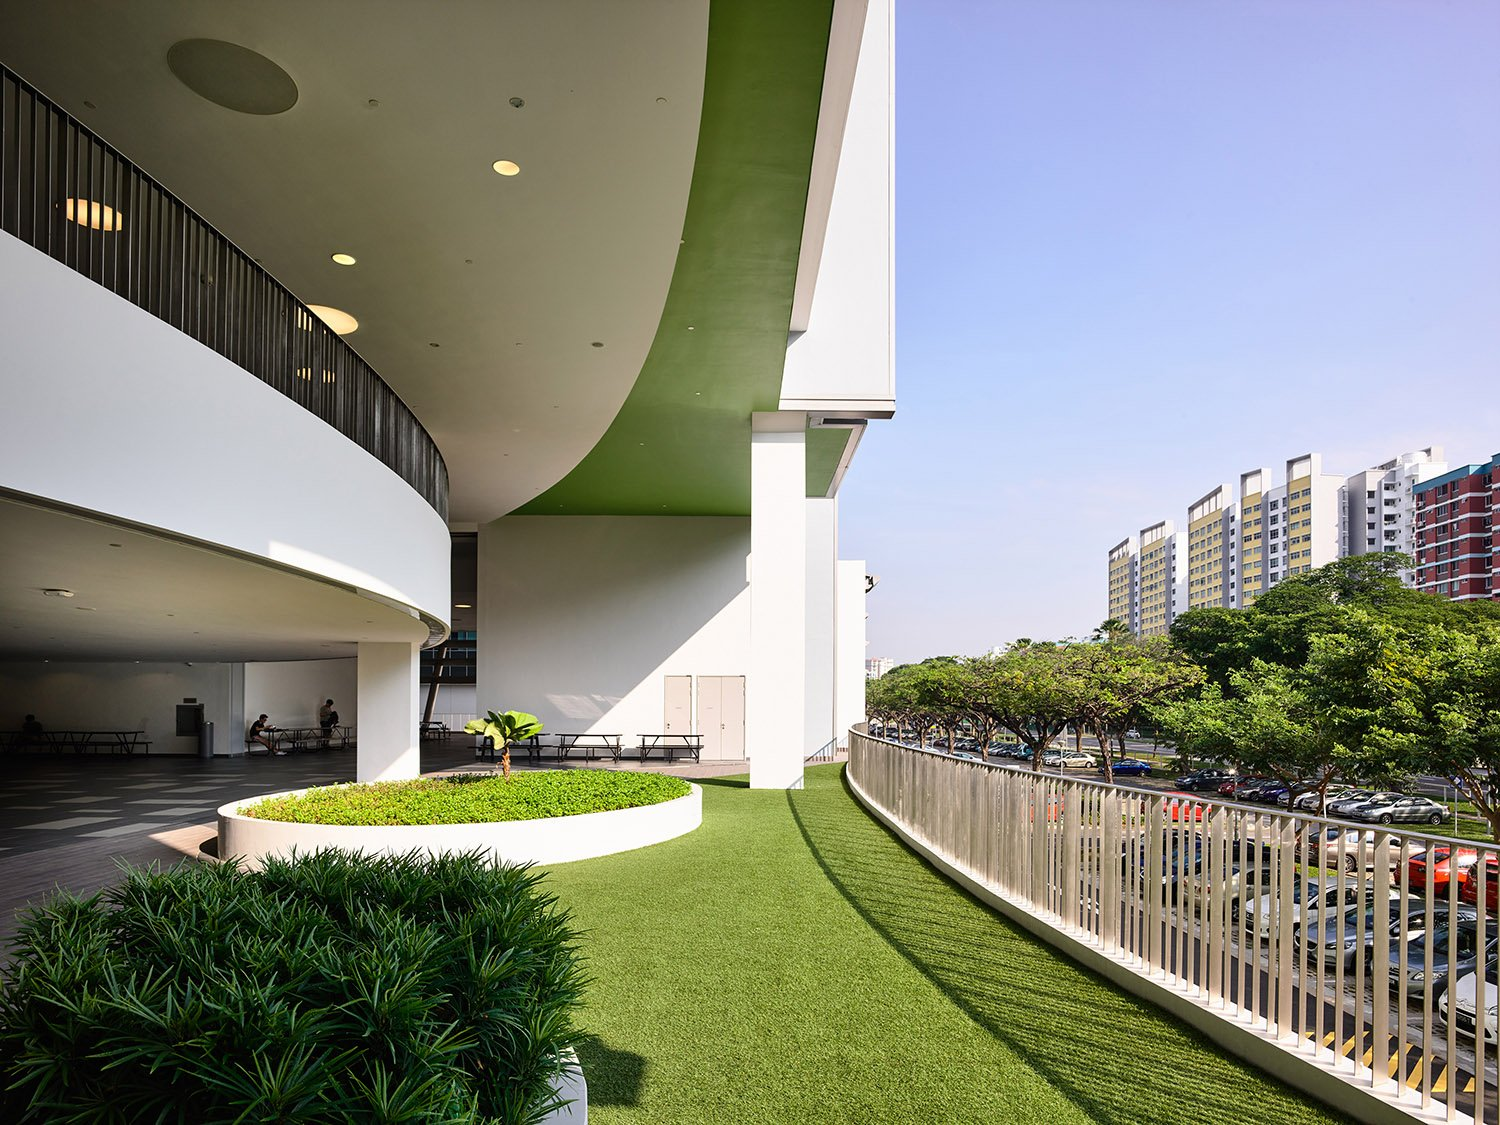 Edges of the podium are interspersed with greenery to further soften the edges